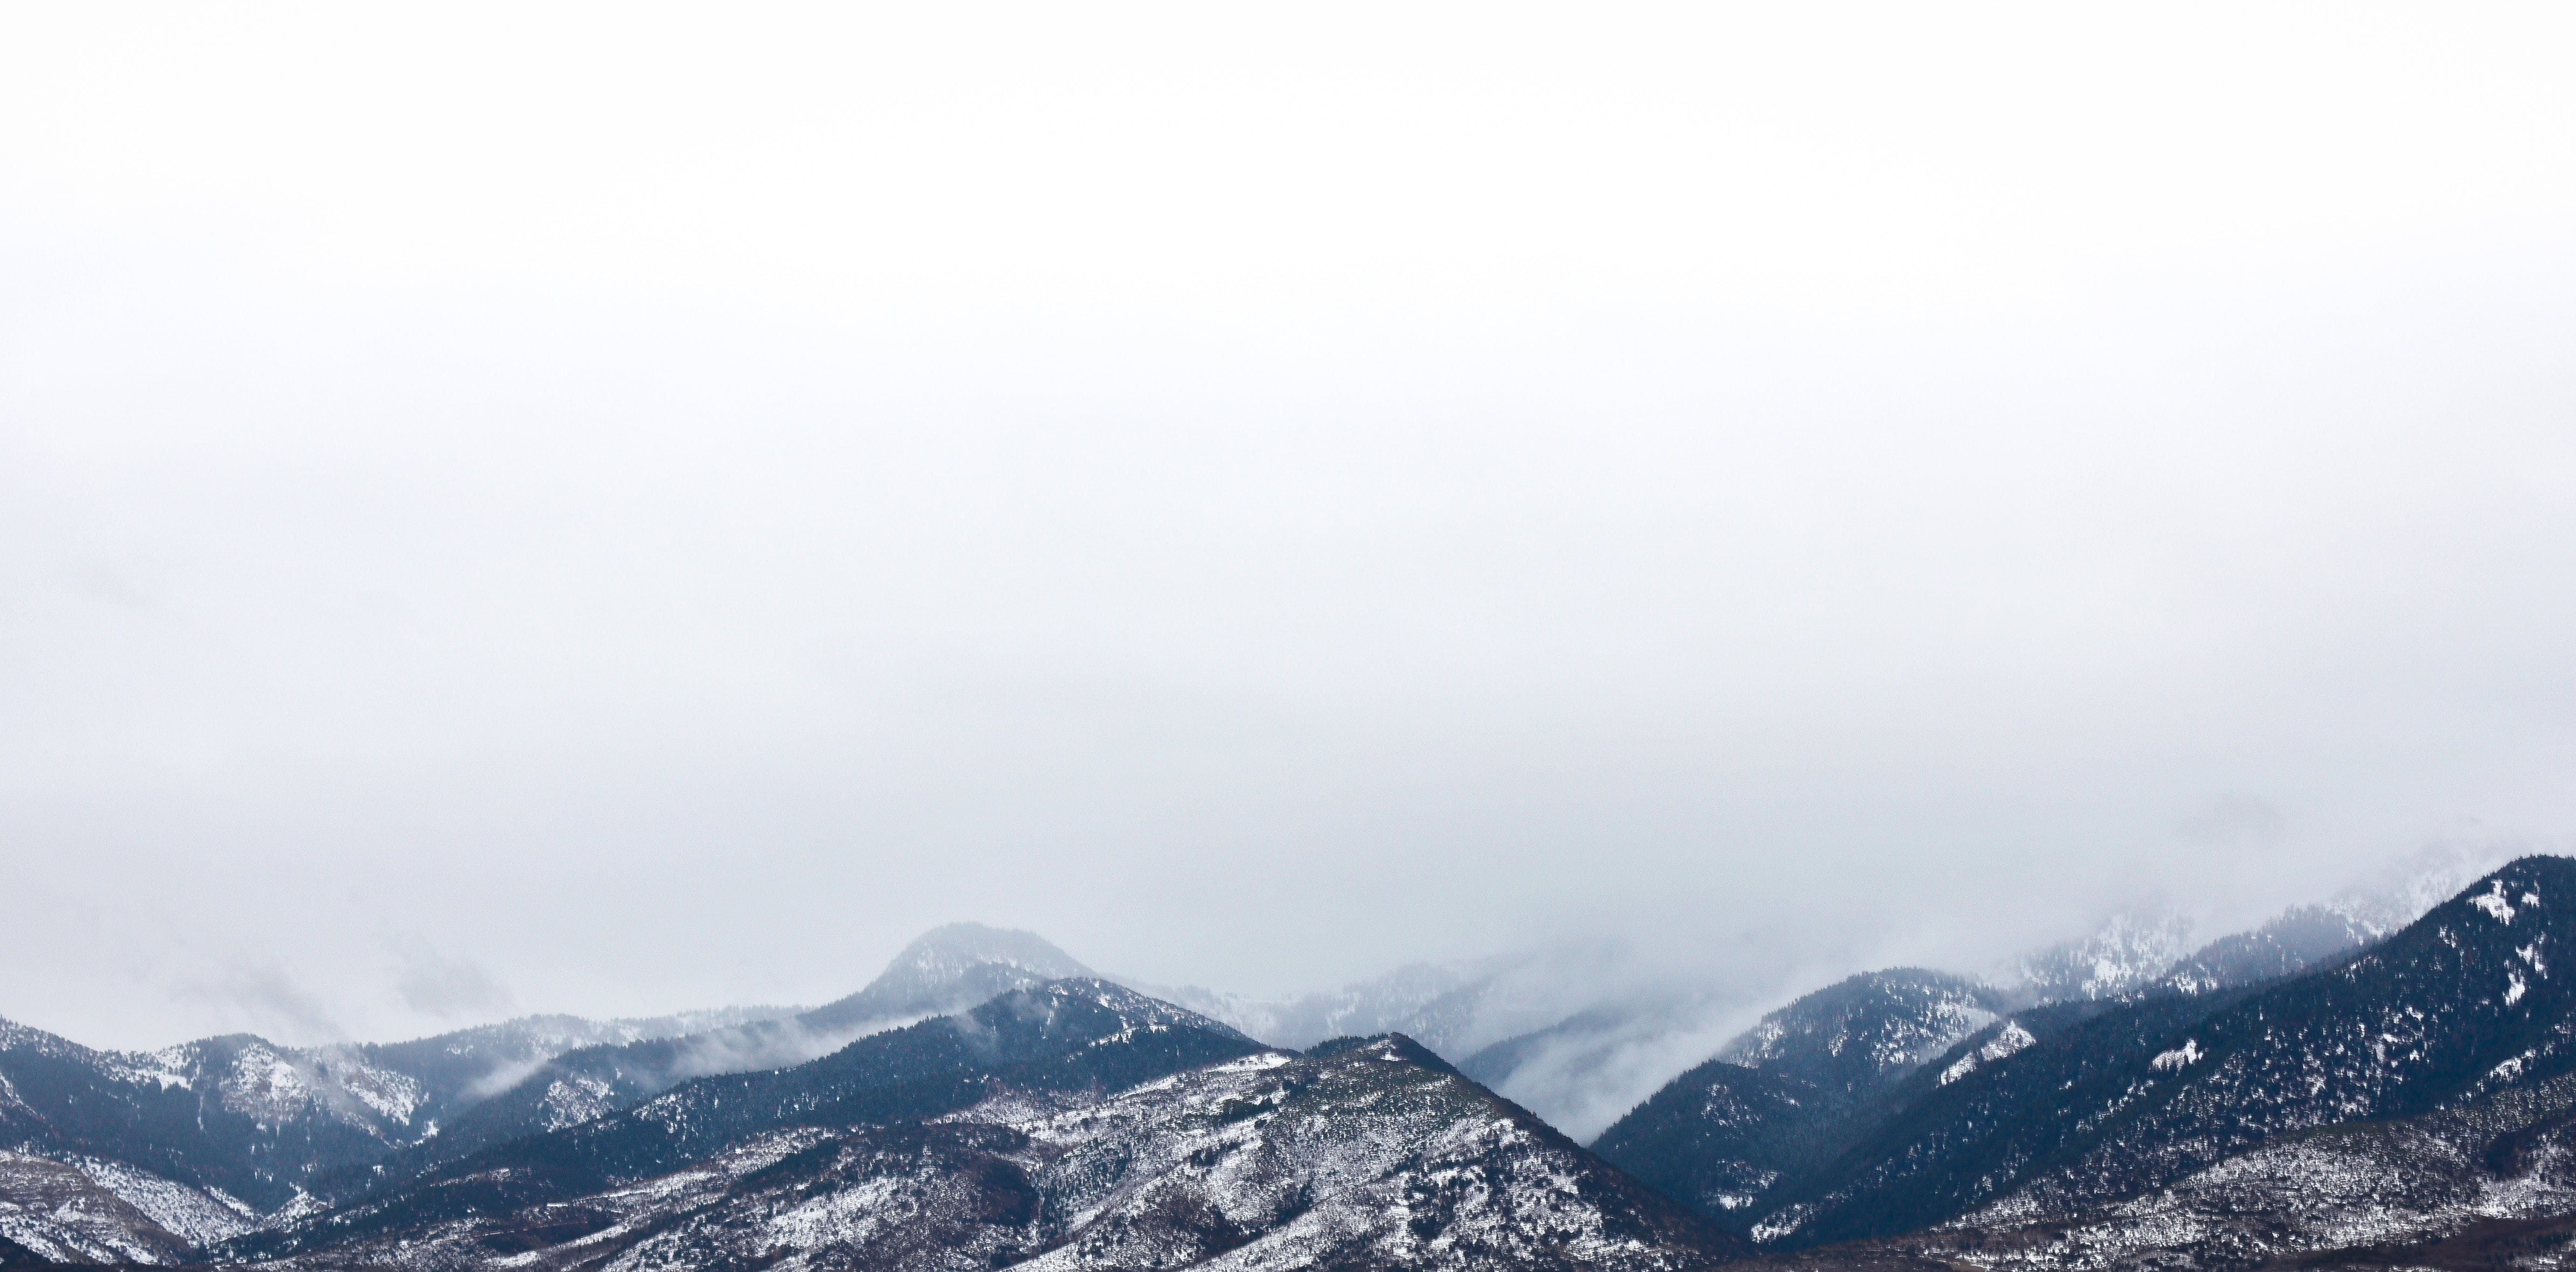 Snow Coated Mountain Under White Clouds